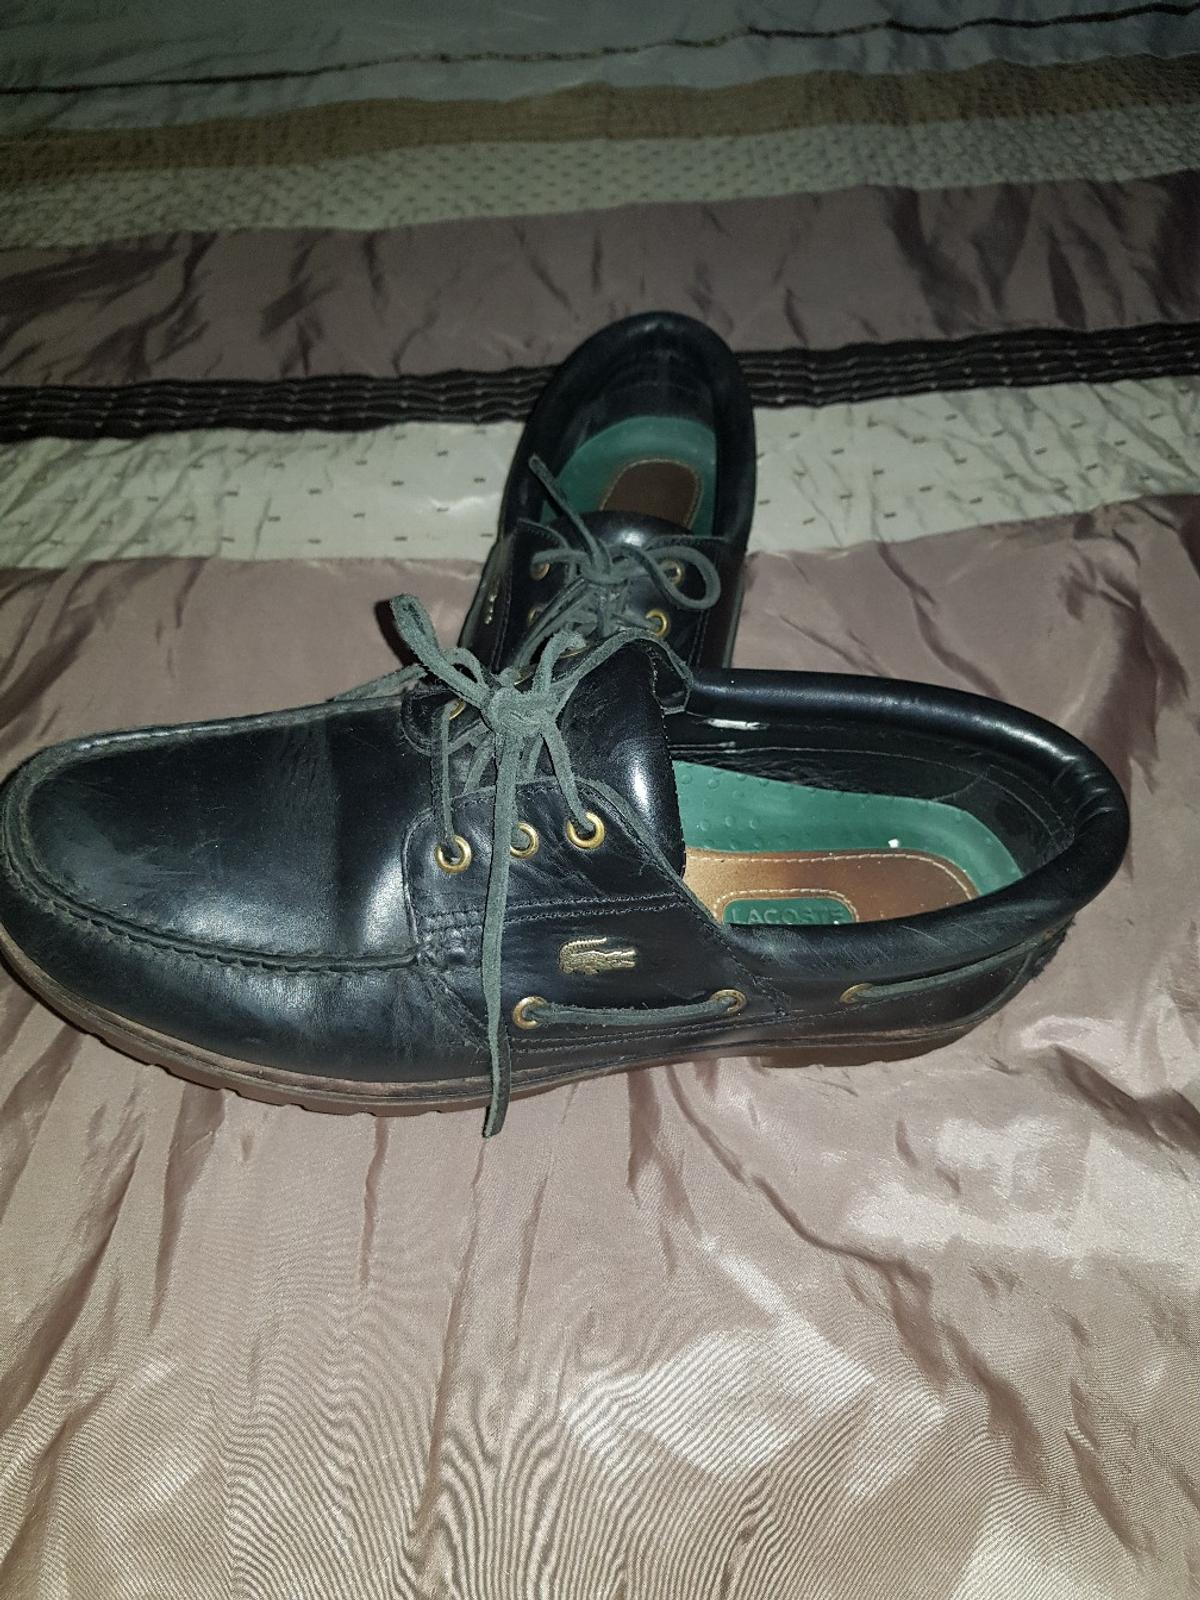 mens lacoste shoes size 12 only worn couple times loads of wear great condition.can sell both together or single any questions just ask.